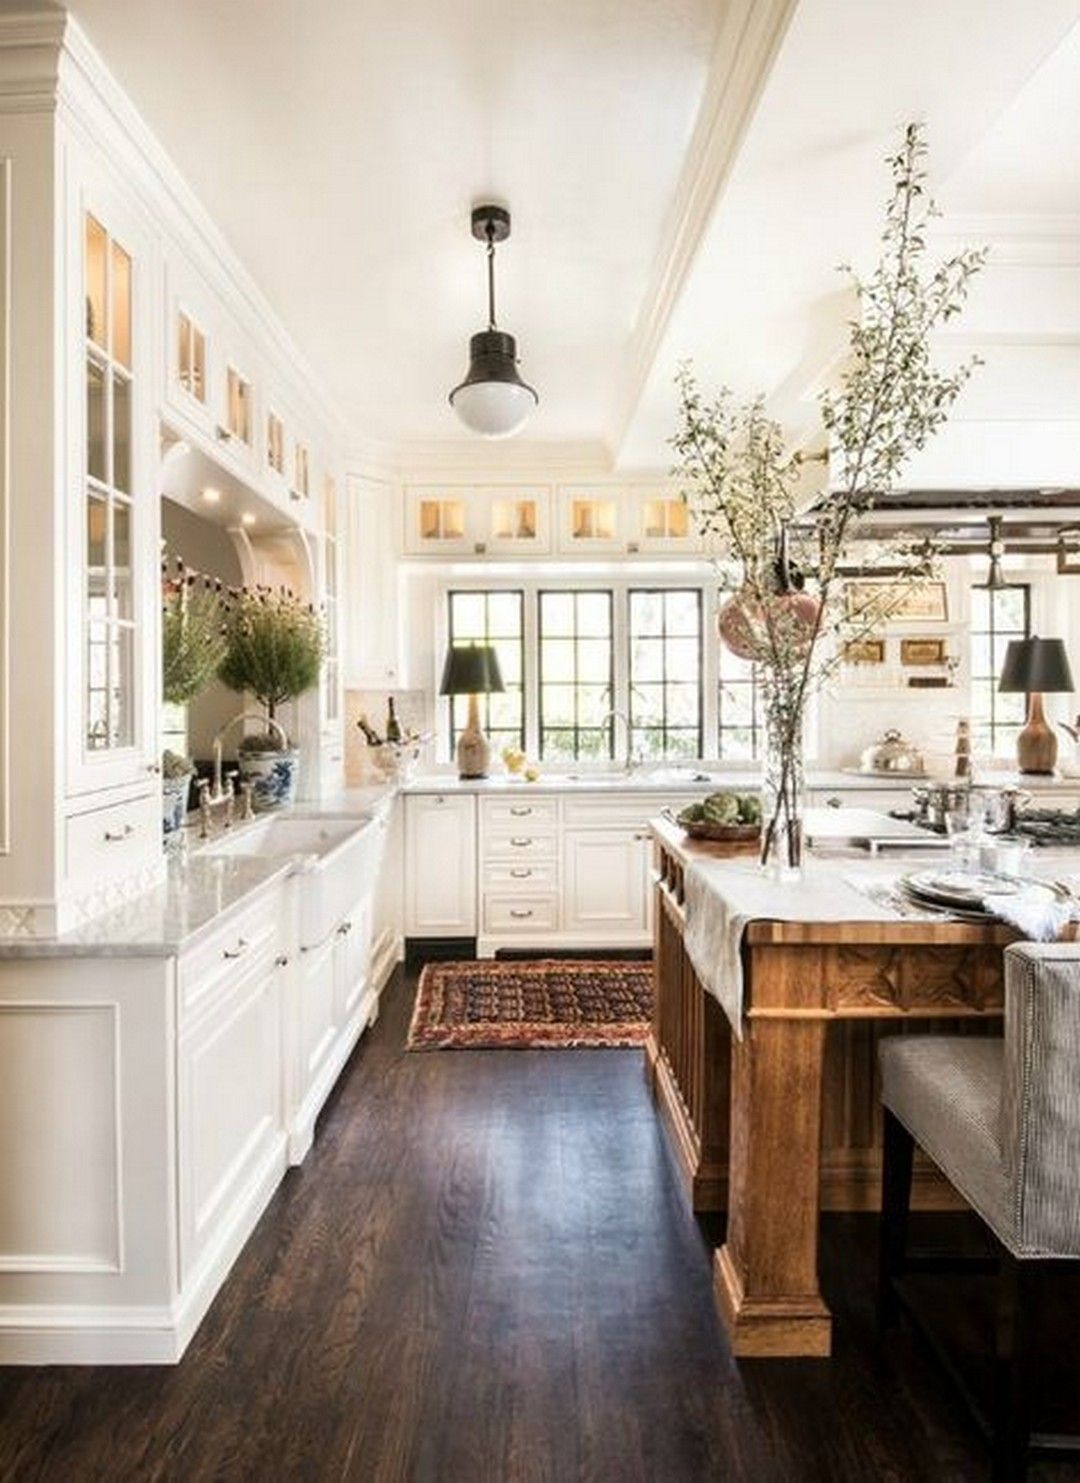 20 Farmhouse Kitchen Ideas On A Budget For